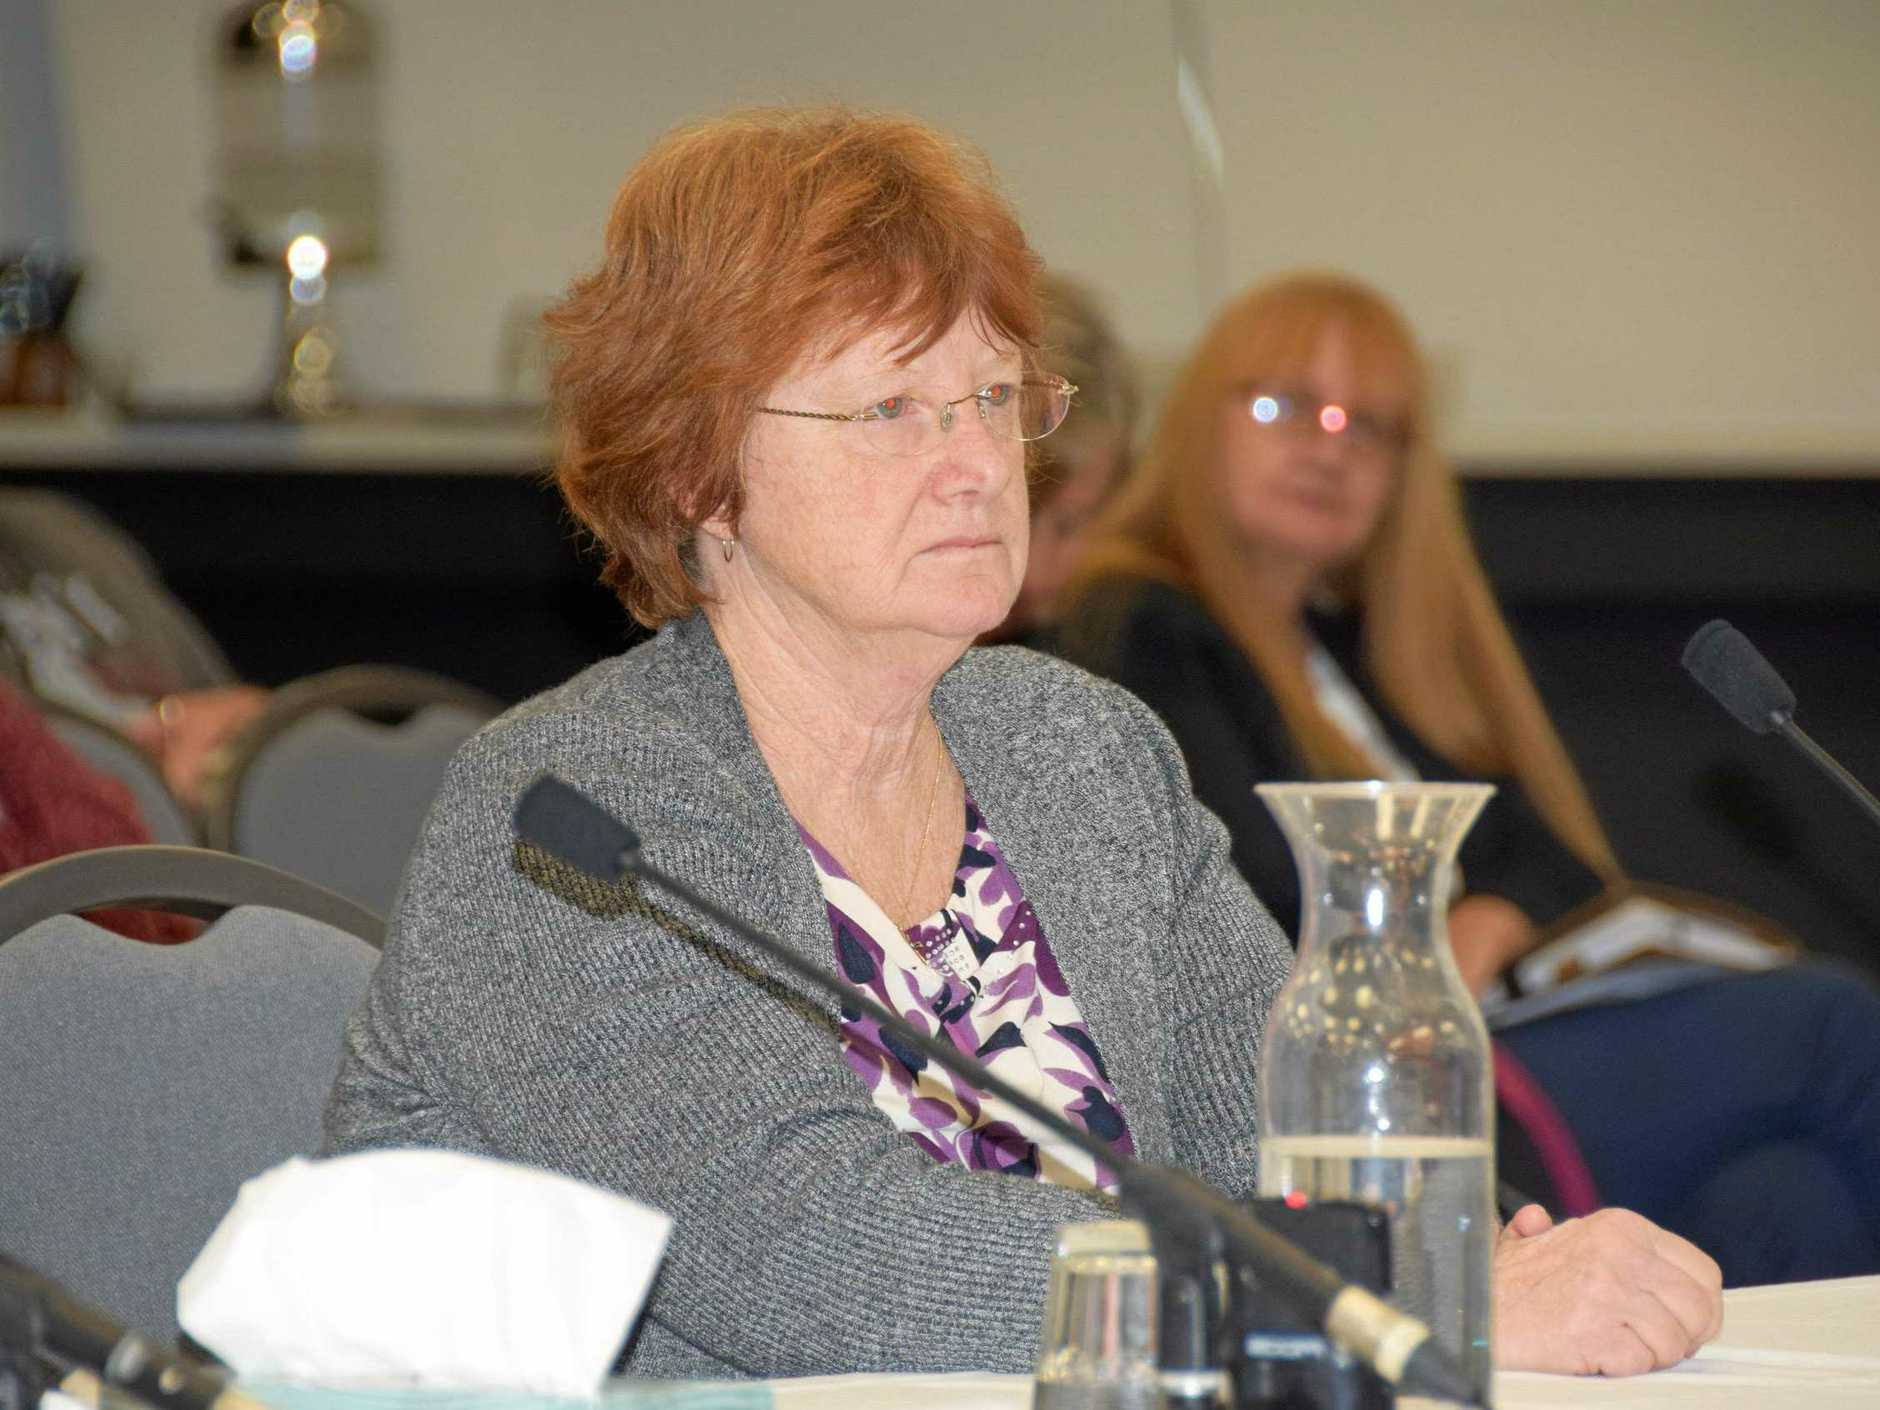 CALL FOR CHANGE: Lyn Morgan called for voluntary assisted dying to be legalised.